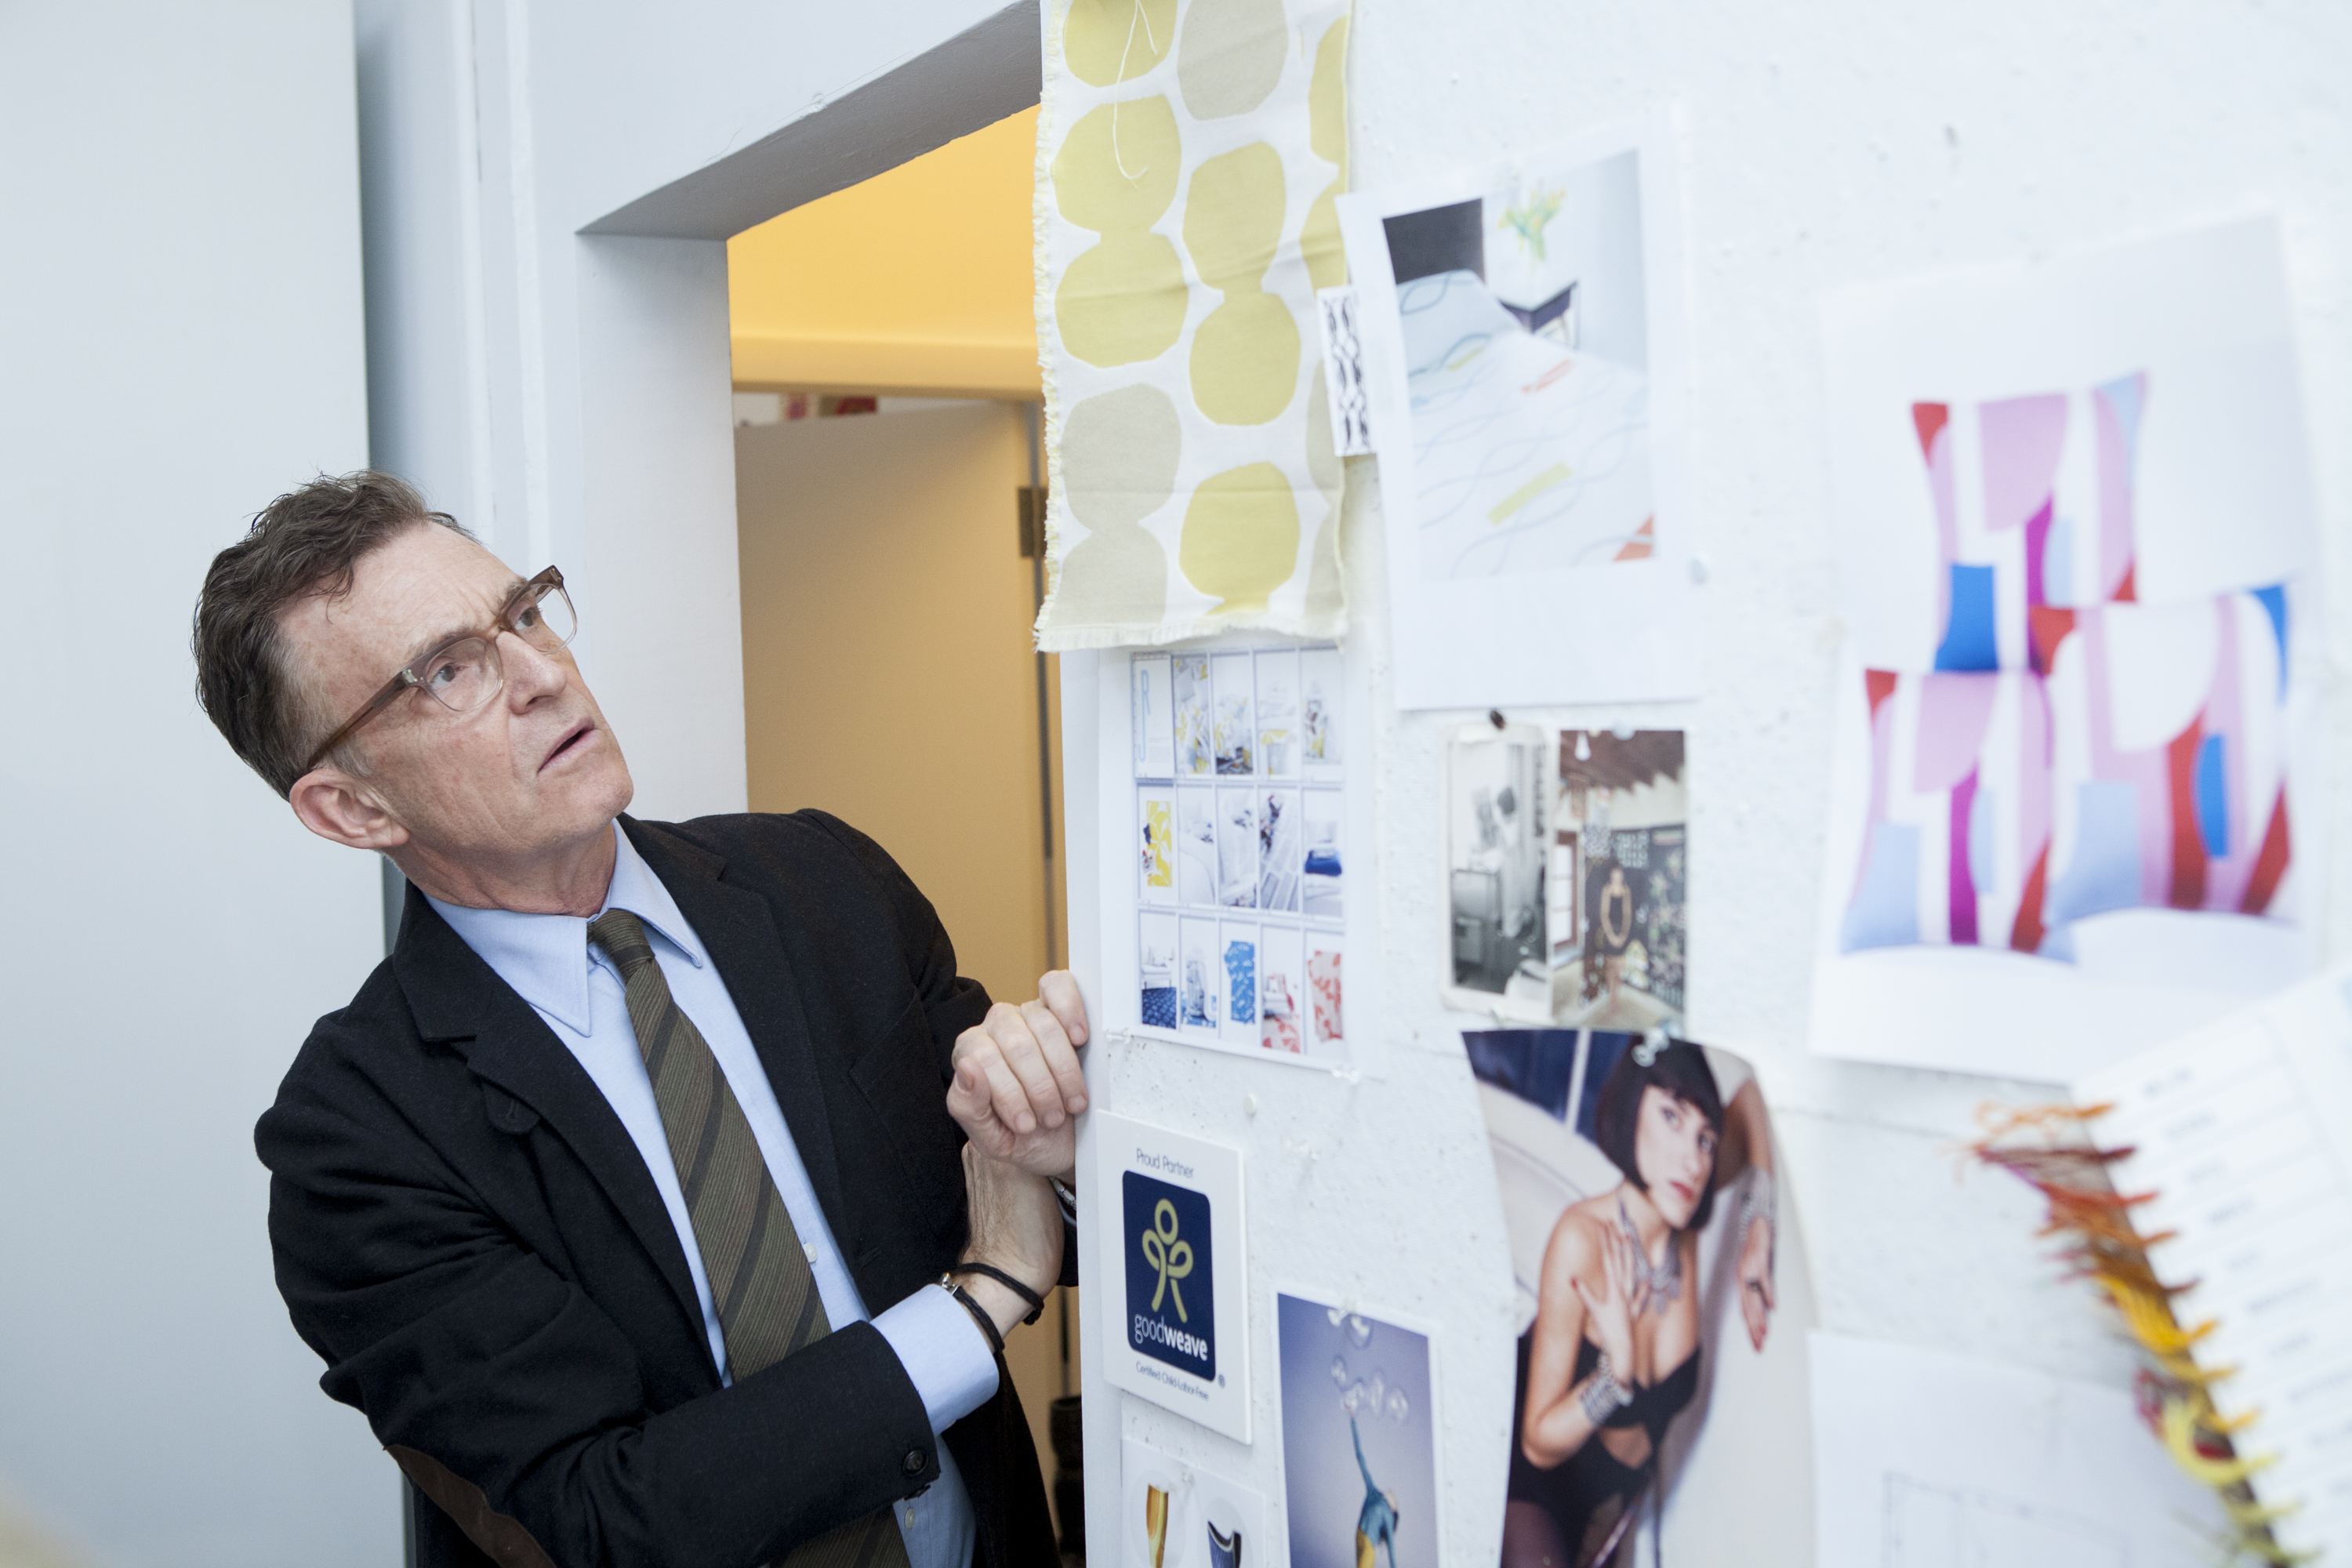 Glenn Gissler takes a closer look at the inspiration board.